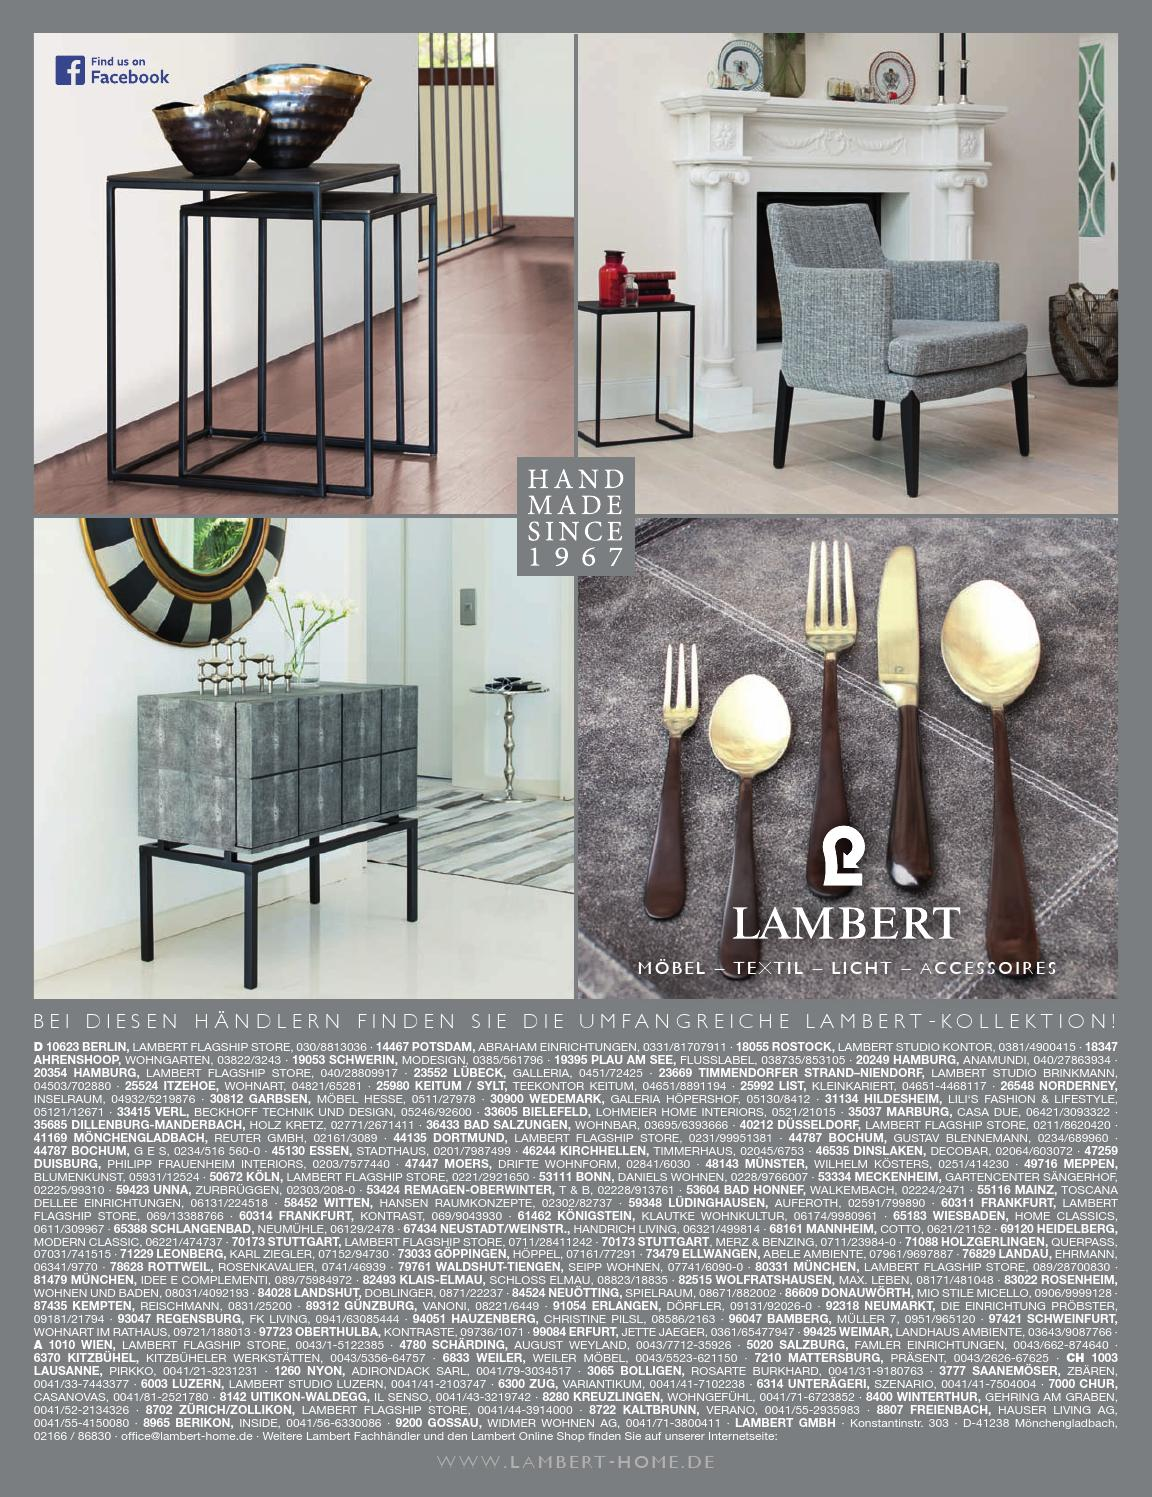 Gartencenter Daniels Wohn Design 1 2016